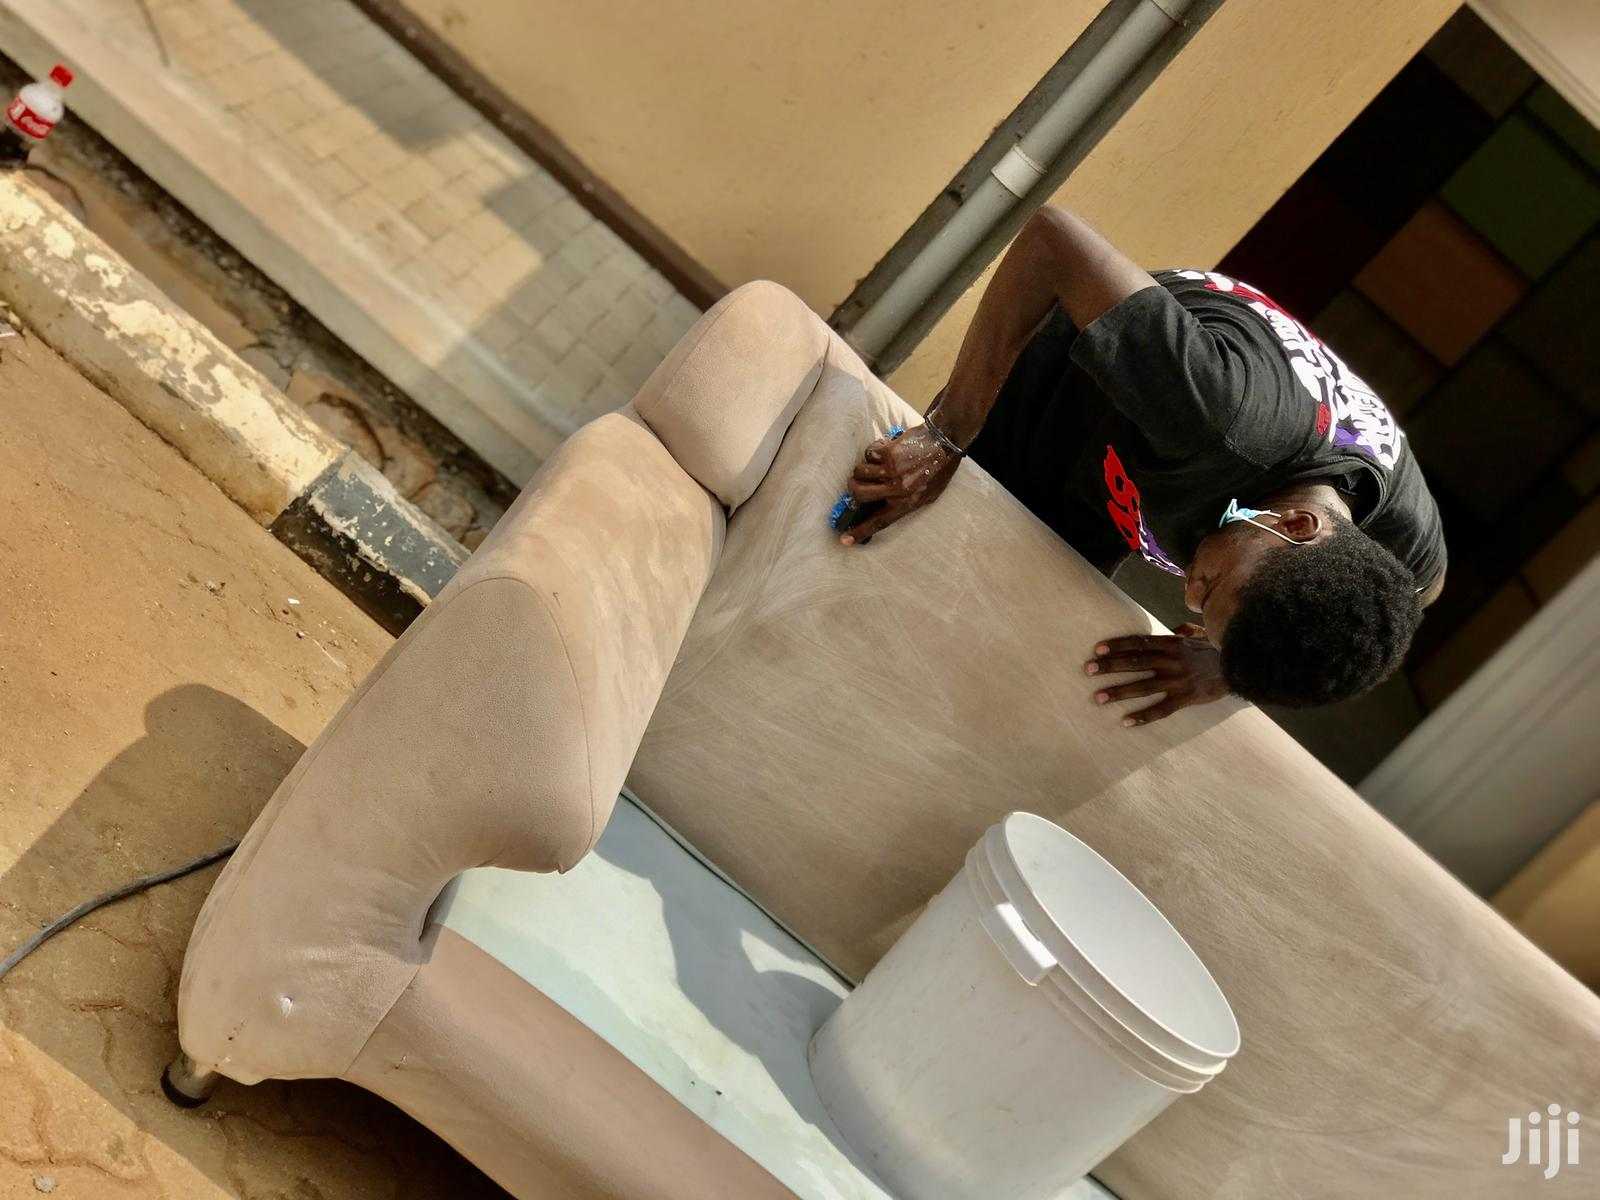 Ssofa Cleaning And Carpet Cleaning Services